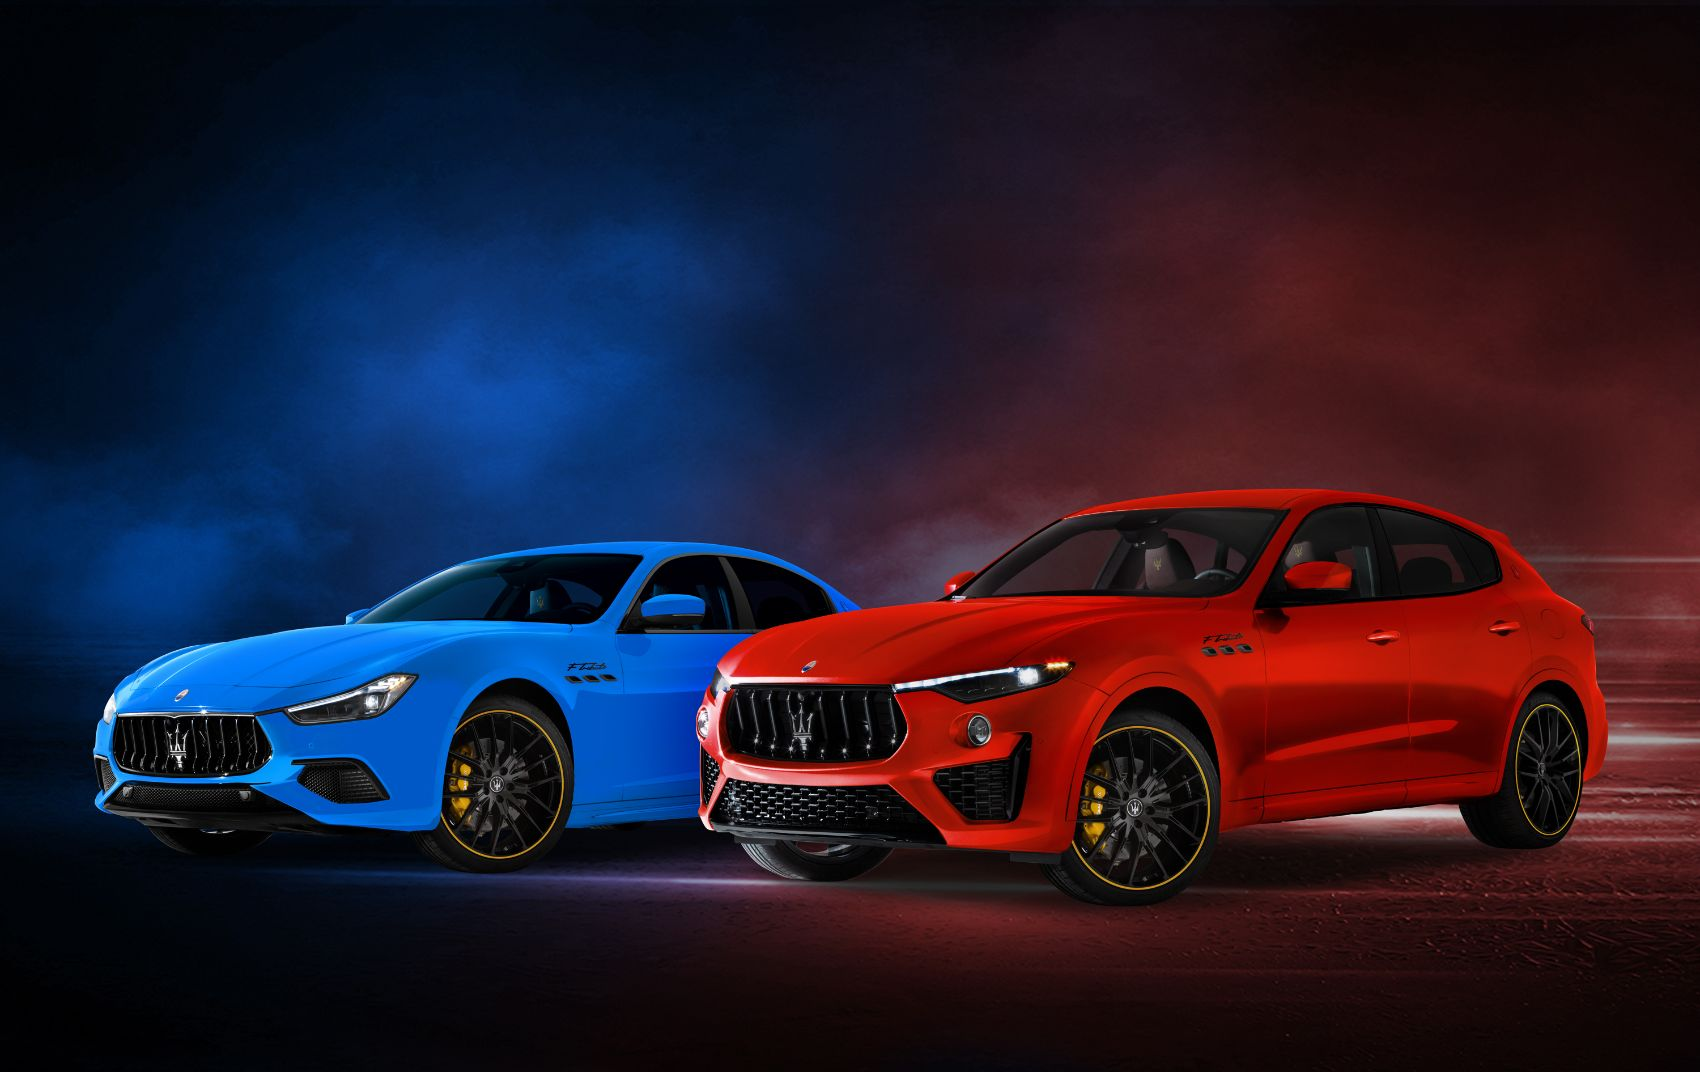 Enjoy This Gallery of The New Maserati F Tributo Ghibli & Levante